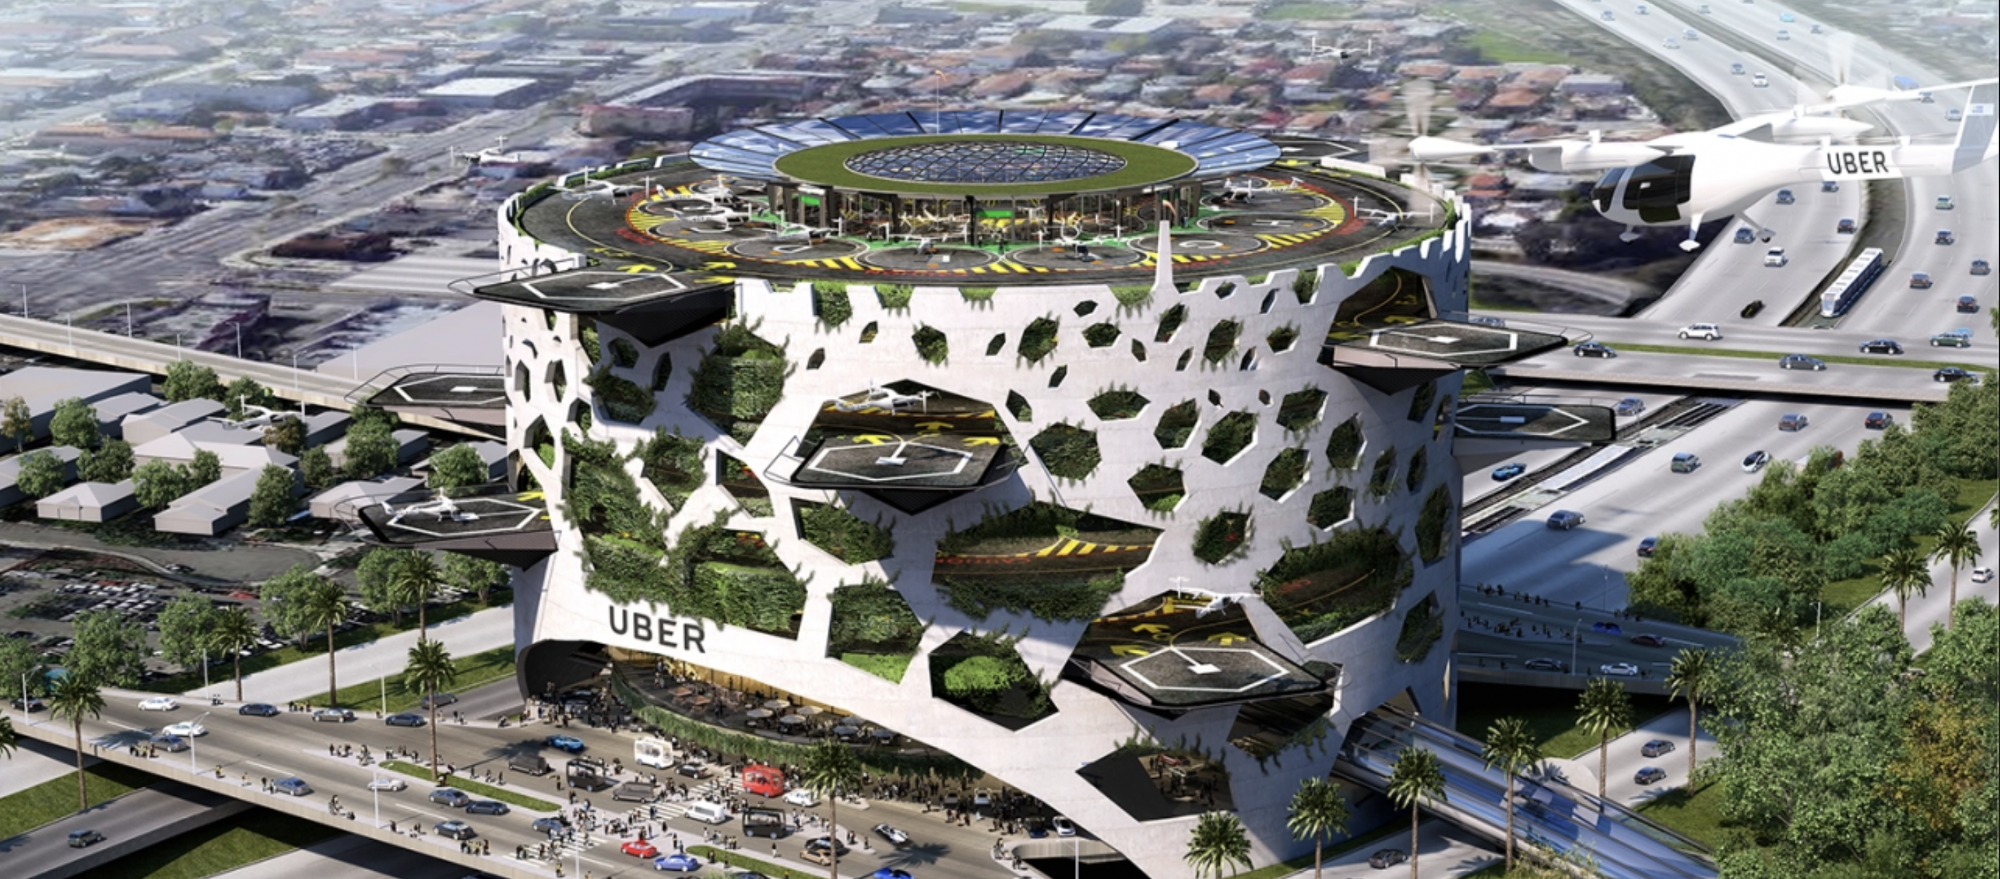 Image of Uber's concept of a multi-story transit hub for electric air taxis built above a series of freeways in an urban landscape.